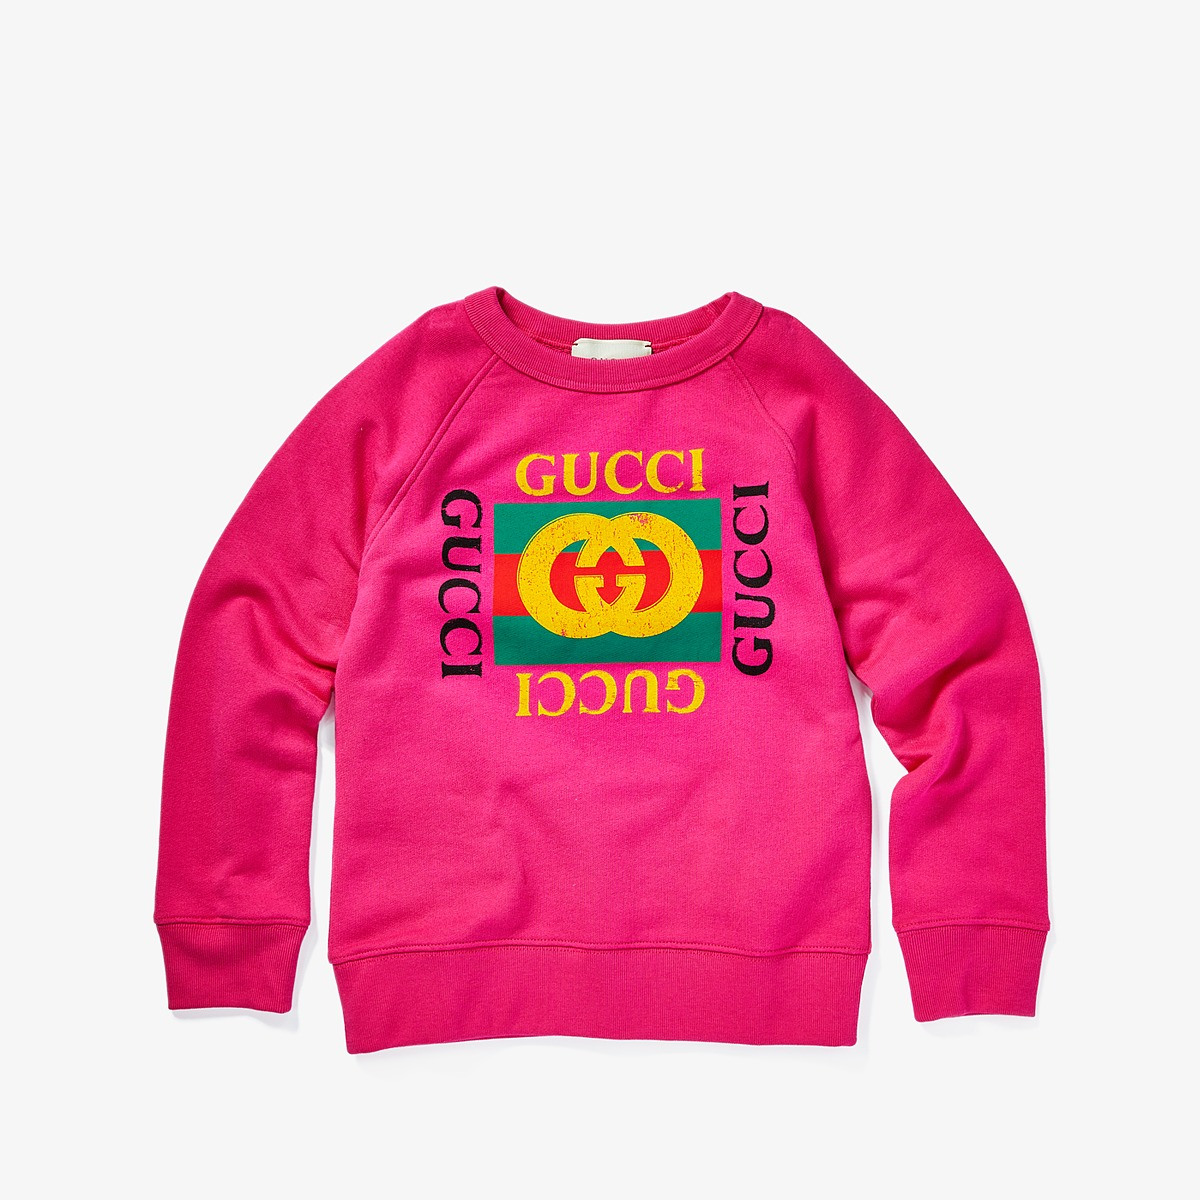 Gucci Kids - Sweatshirt 483878X3G97 (Little Kids/Big Kids) (Bright Fuchsia/Green/Red) Girls Sweatshirt